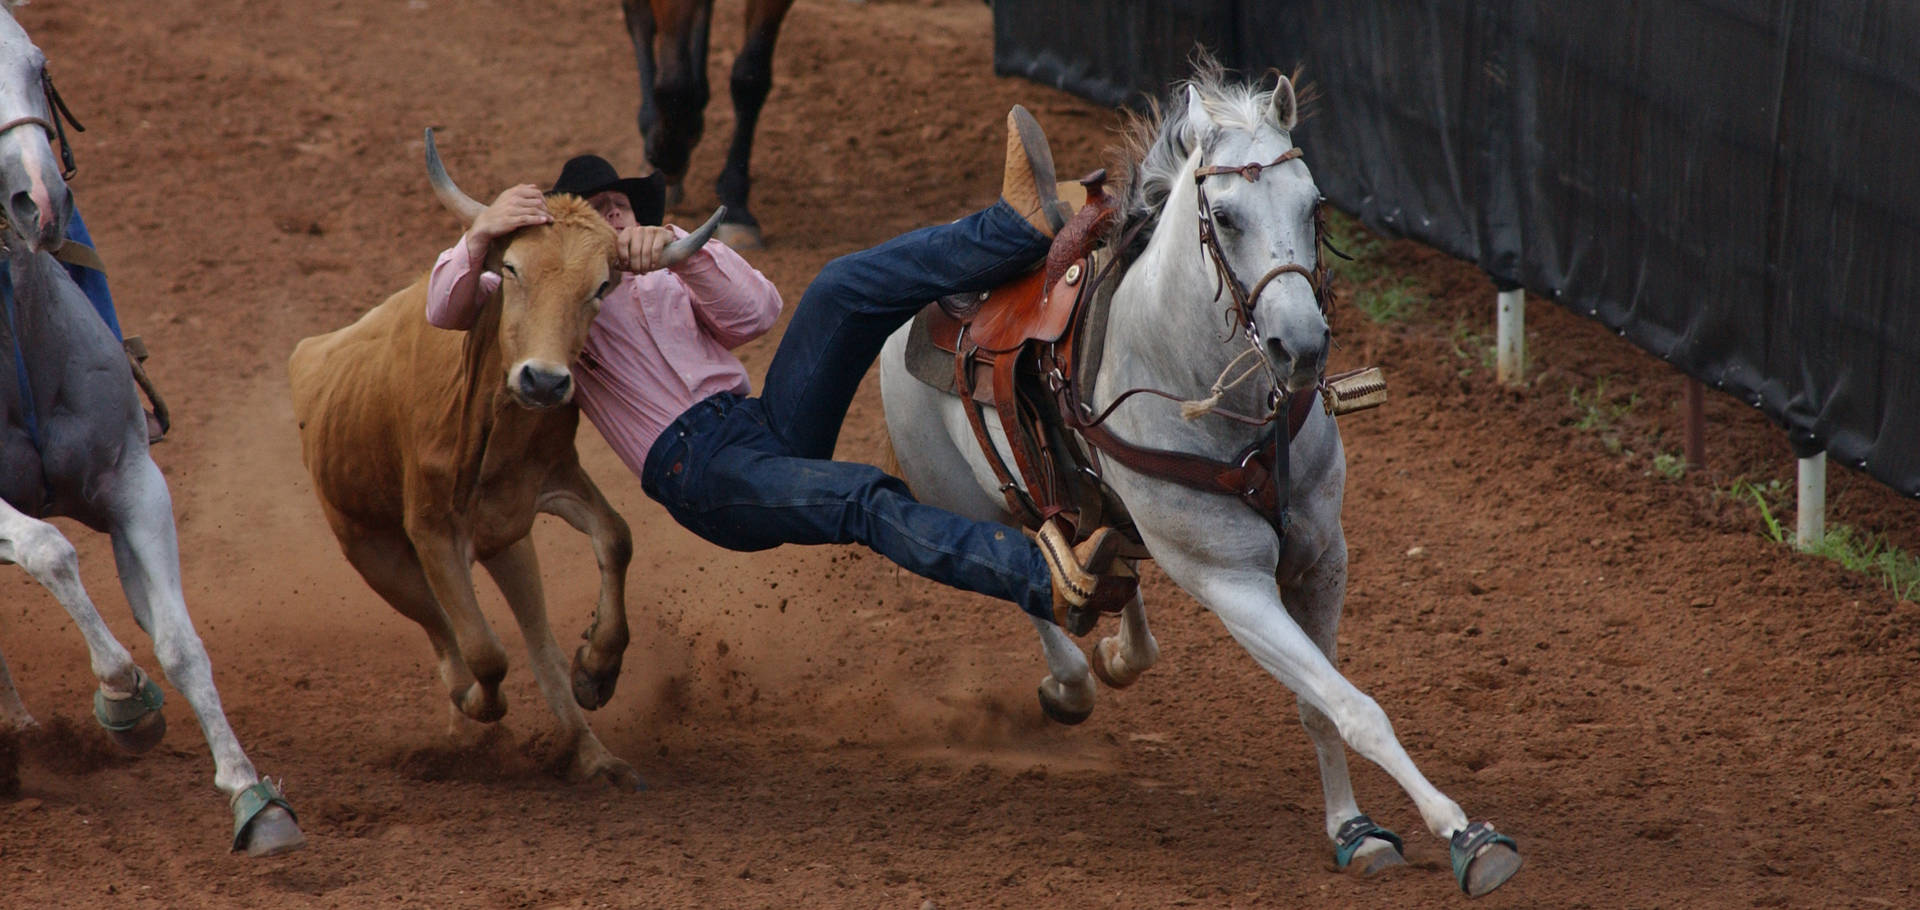 Oklahoma Rodeos | TravelOK.com - Oklahoma's Official ...